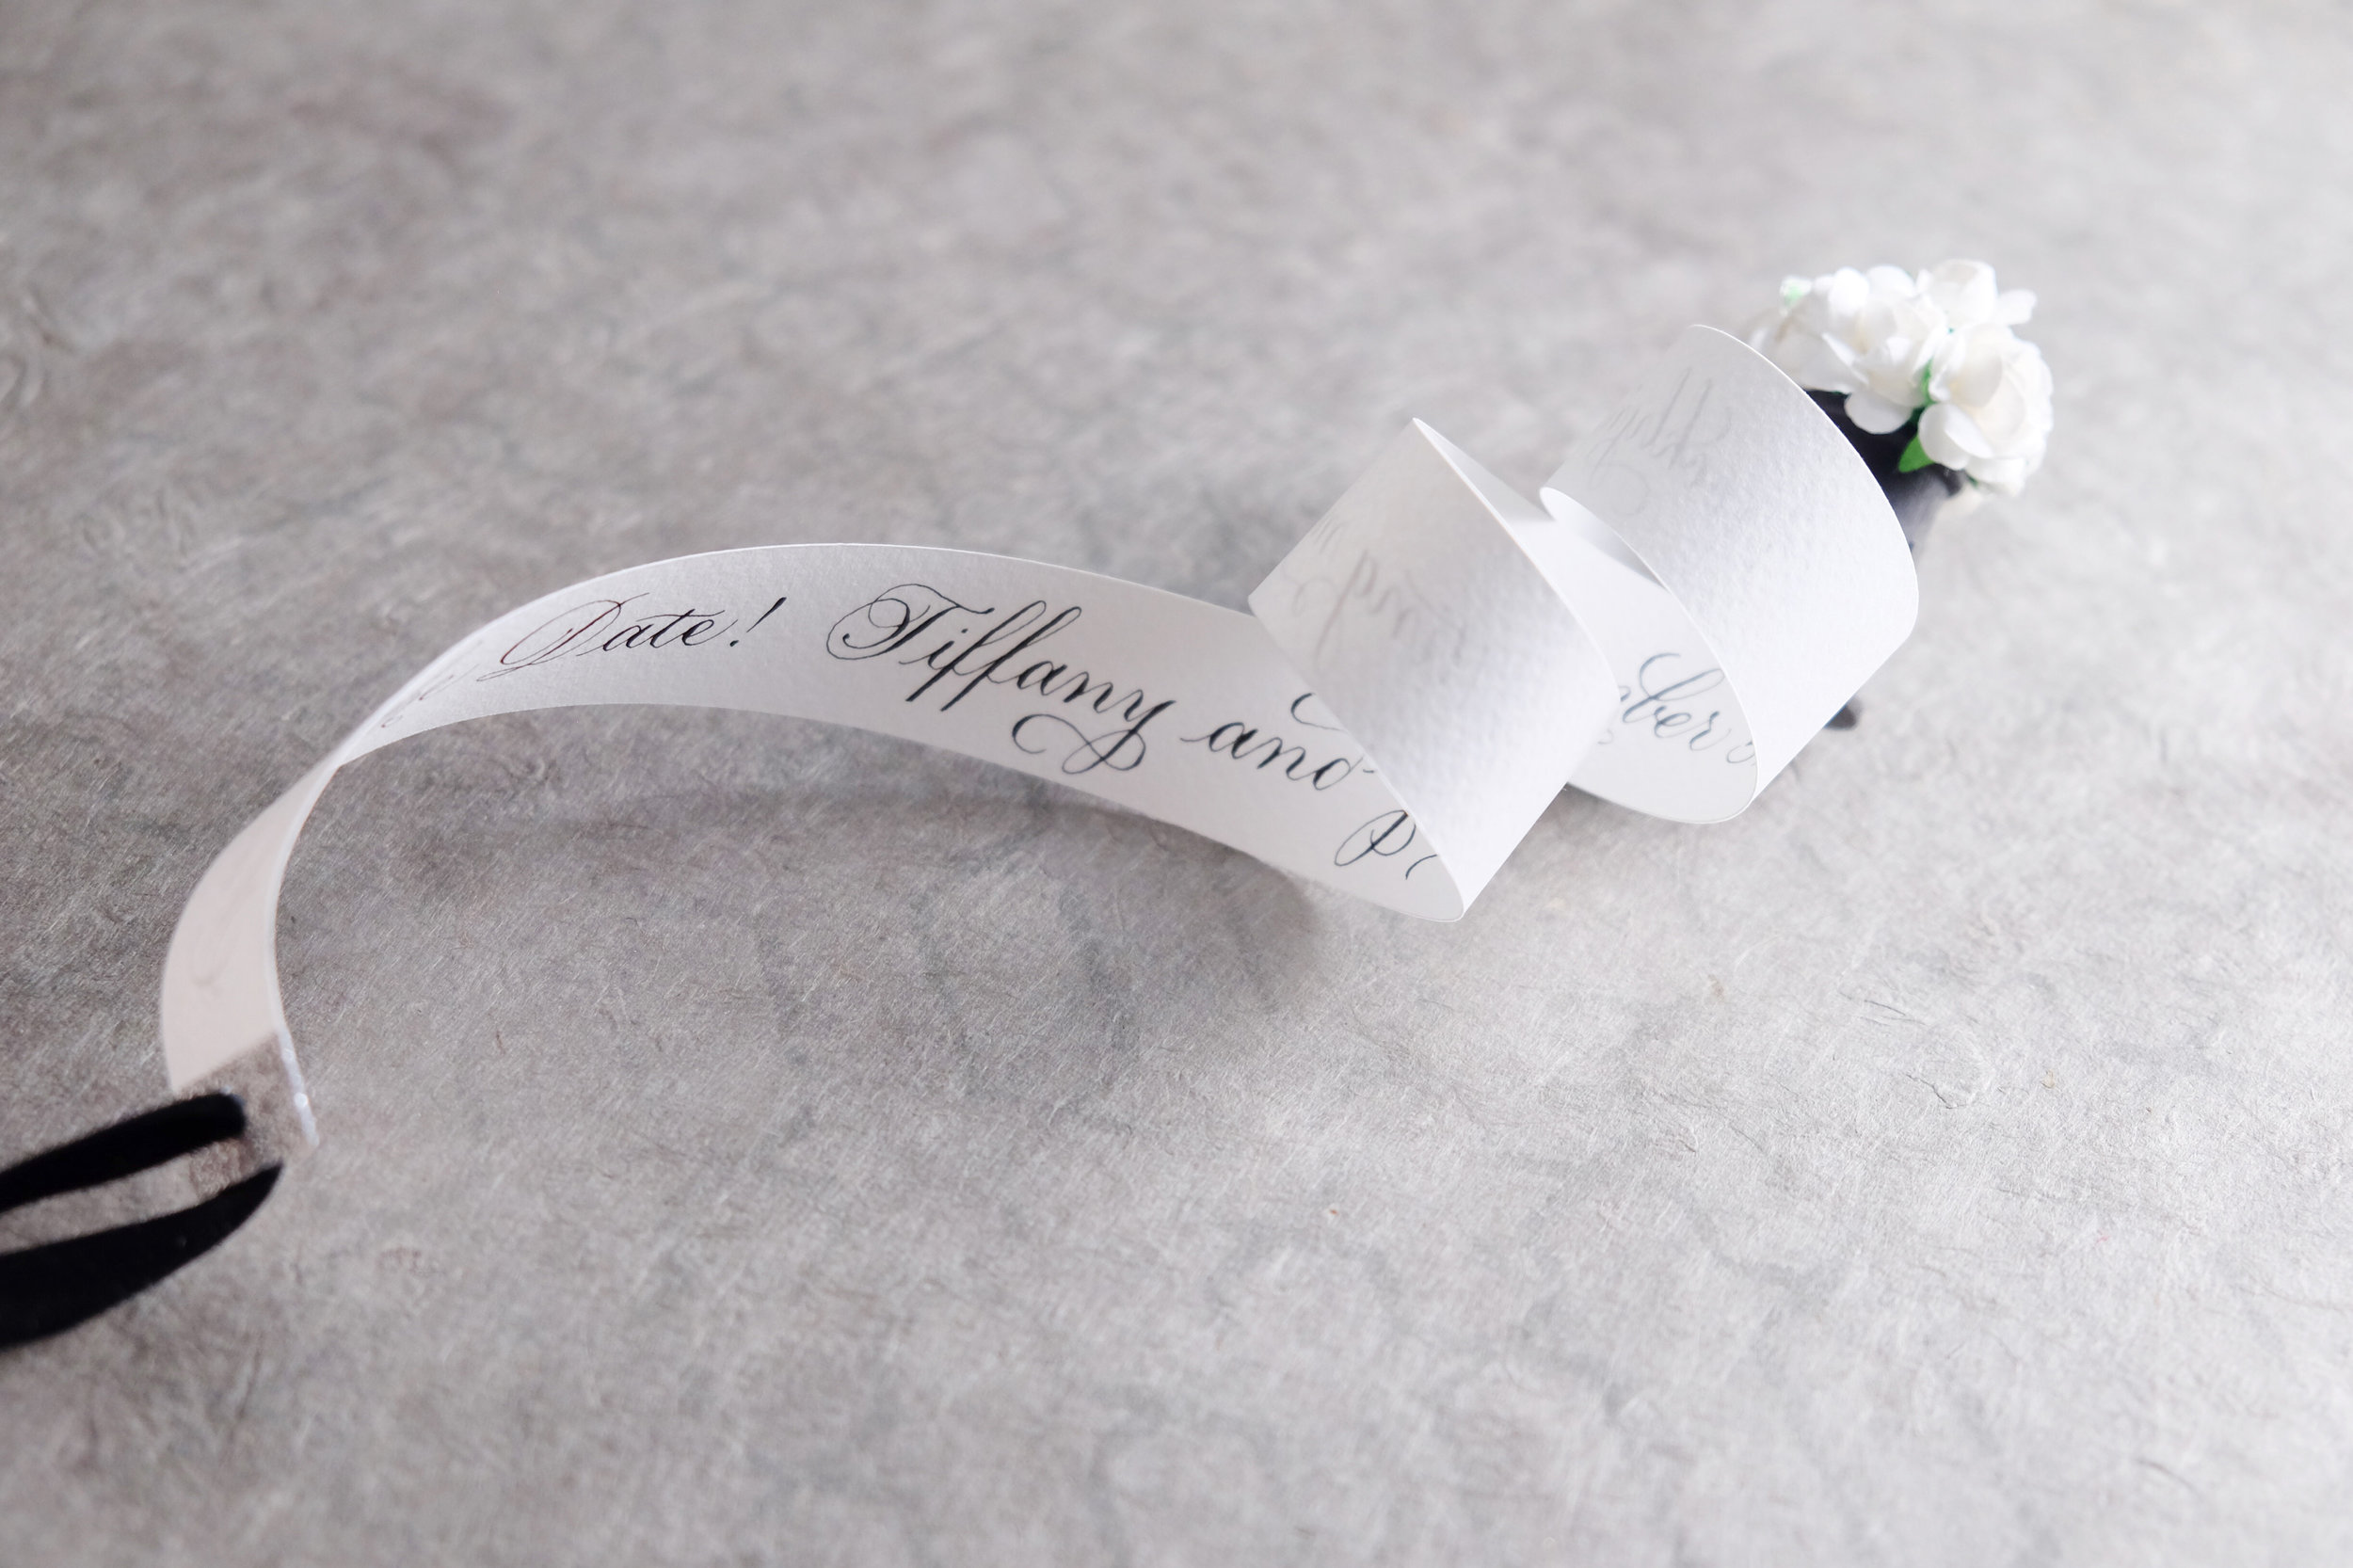 Hand-made scrolls with paper flowers and calligraphy for one-of-a-kind Save the Dates! // designed and hand-crafted by Studio Chavelli www.chavelli.com